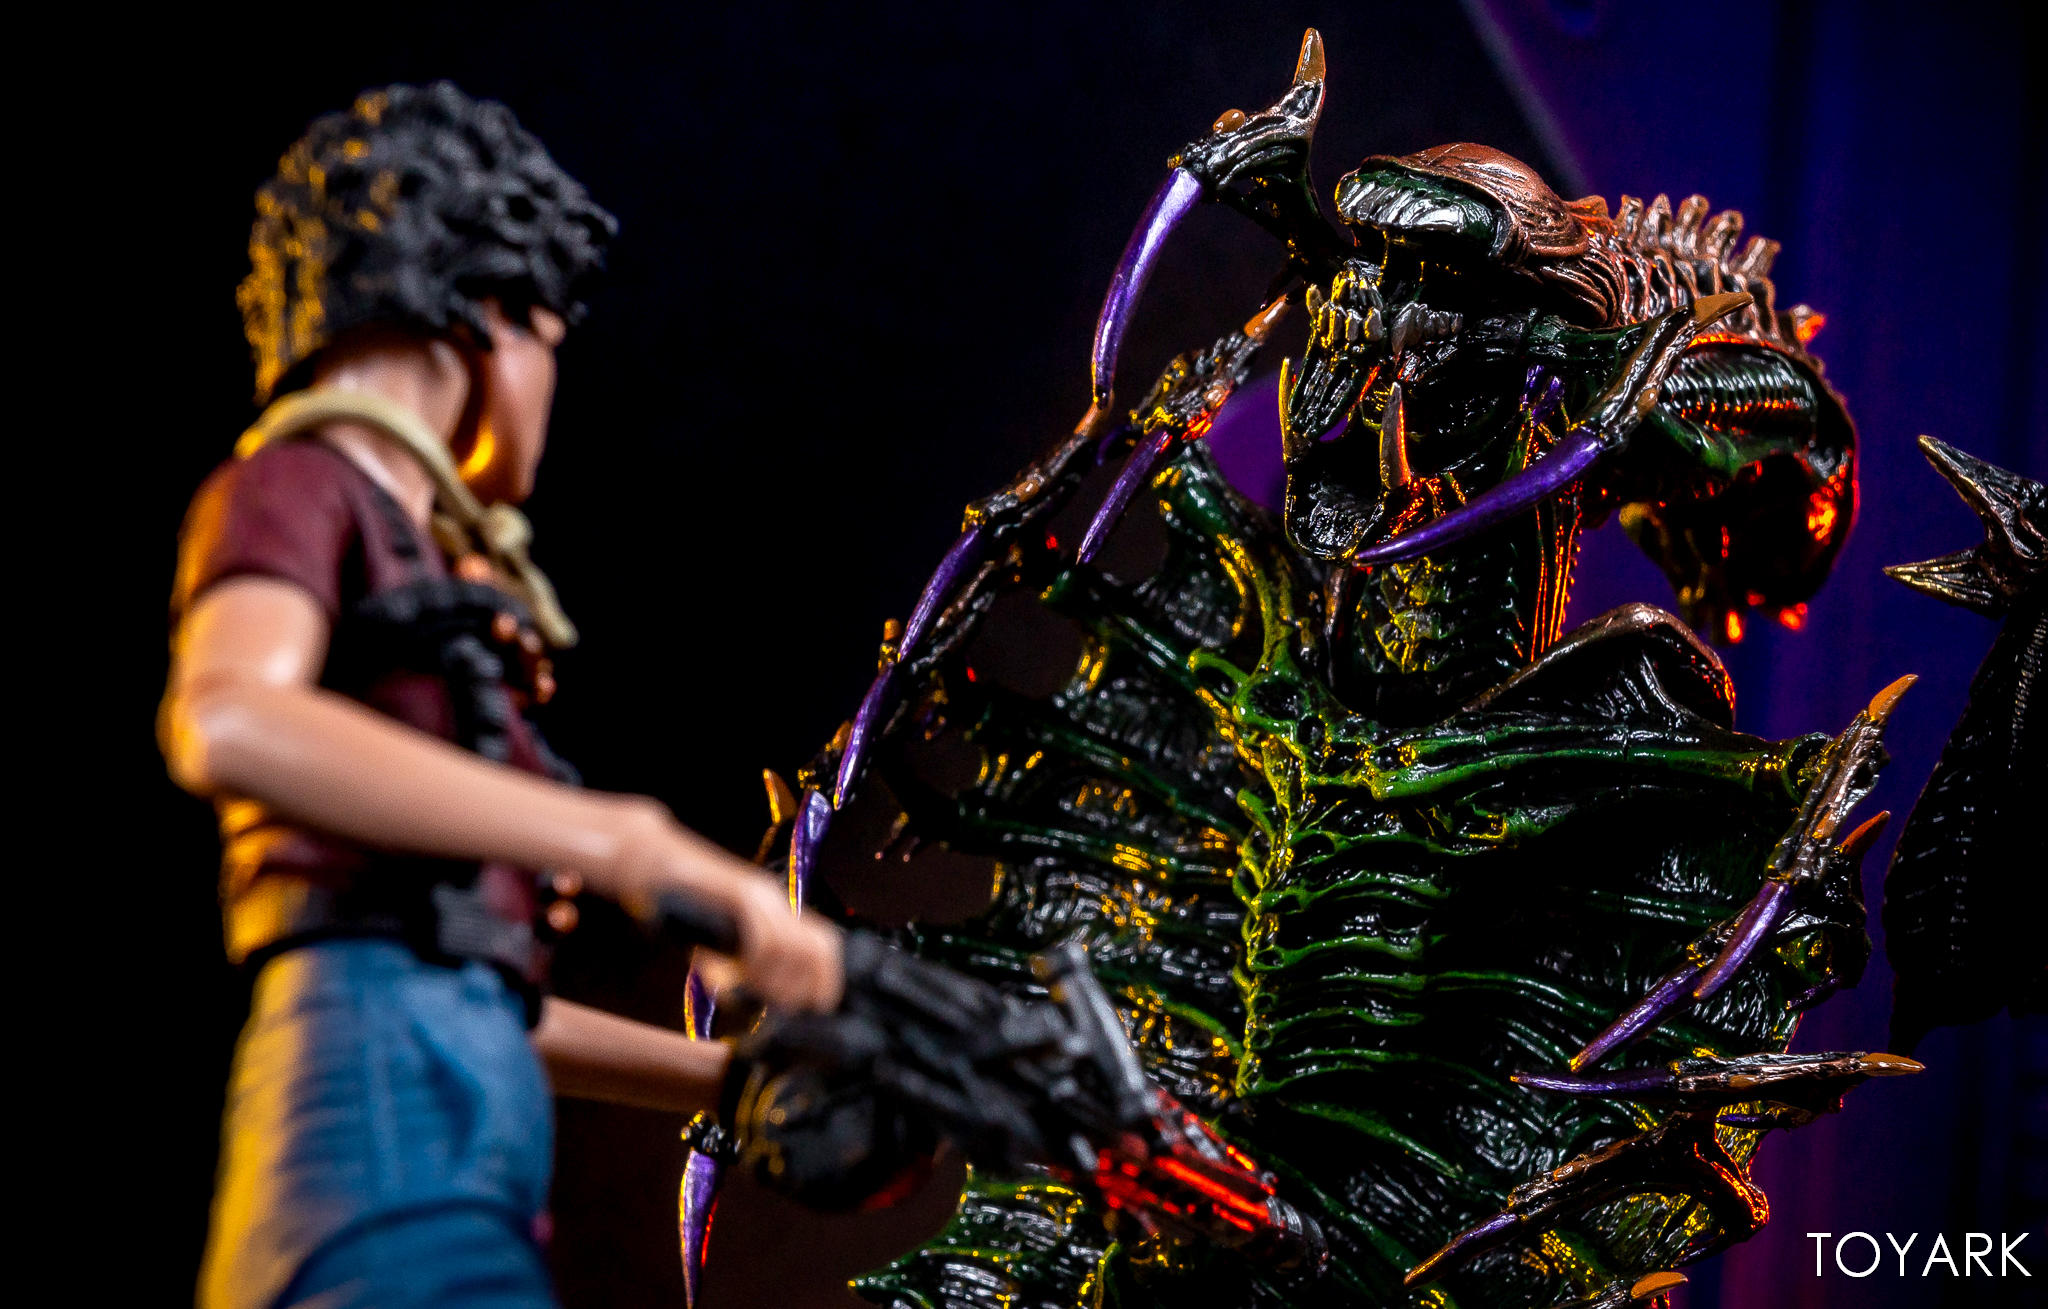 https://news.toyark.com/wp-content/uploads/sites/4/2019/02/Aliens-Series-13-NECA-Gallery-065.jpg